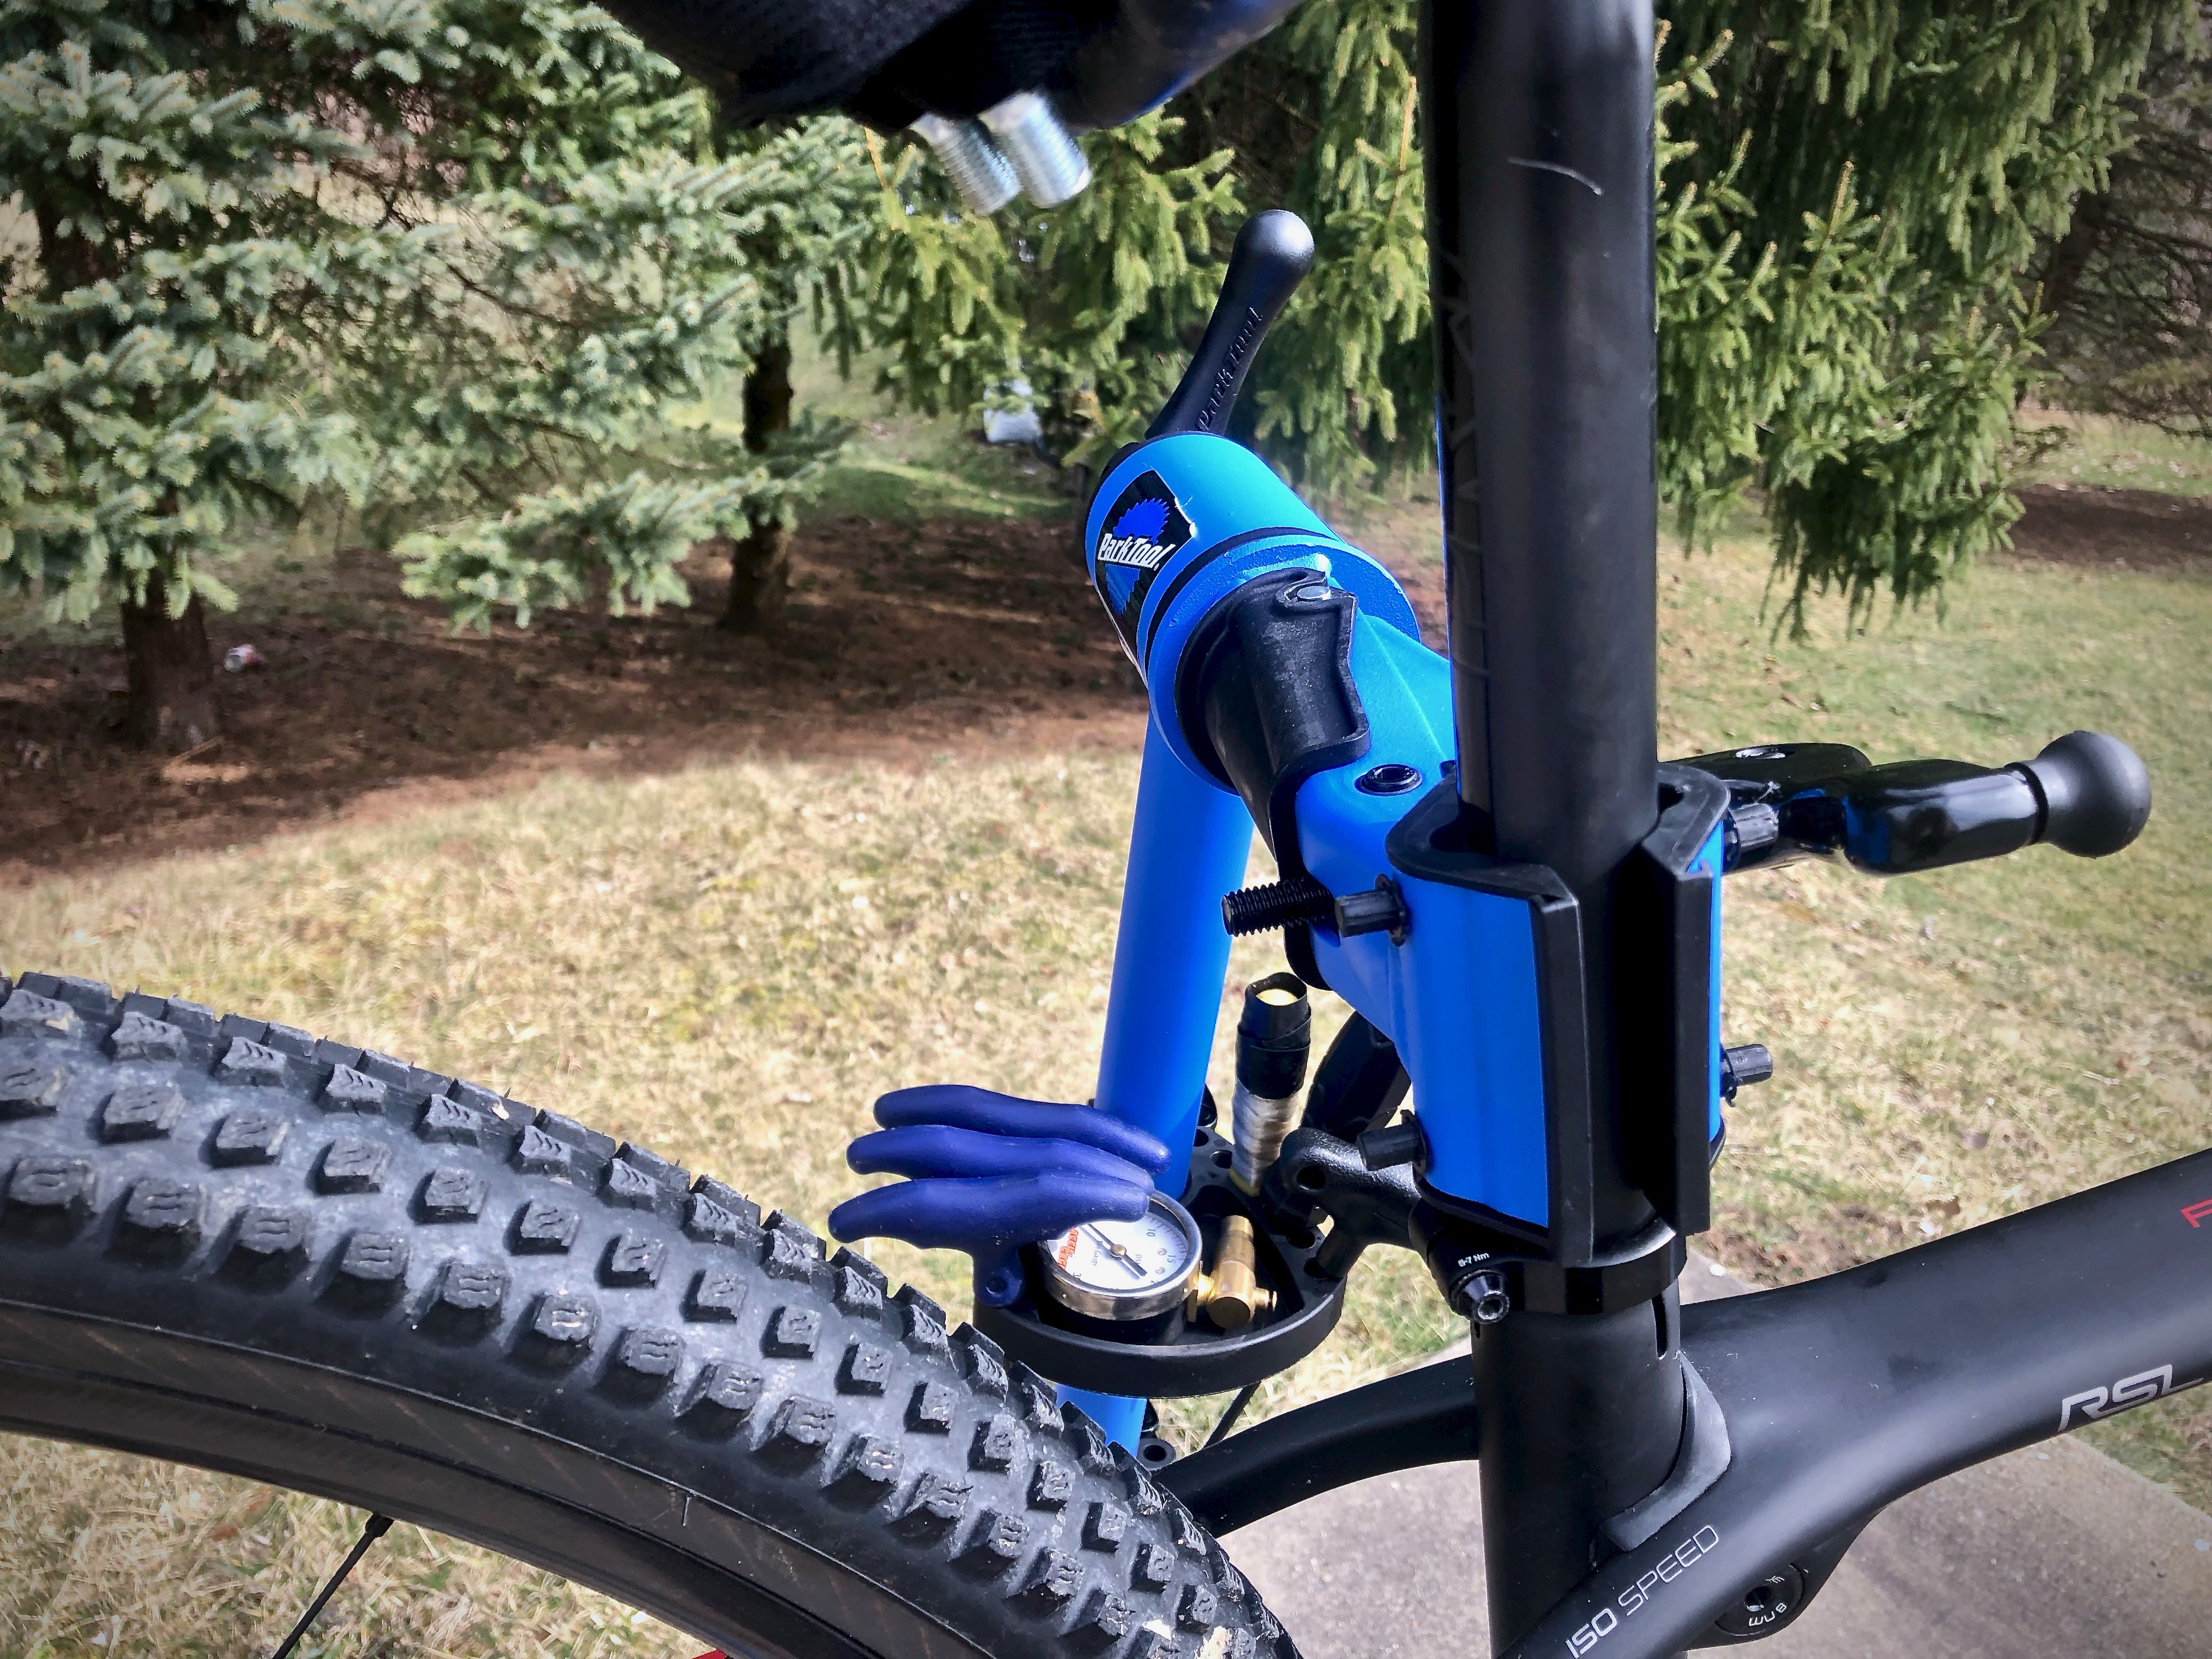 Park Tool PCS 10.2 Deluxe Home Mechanic Workstand Review